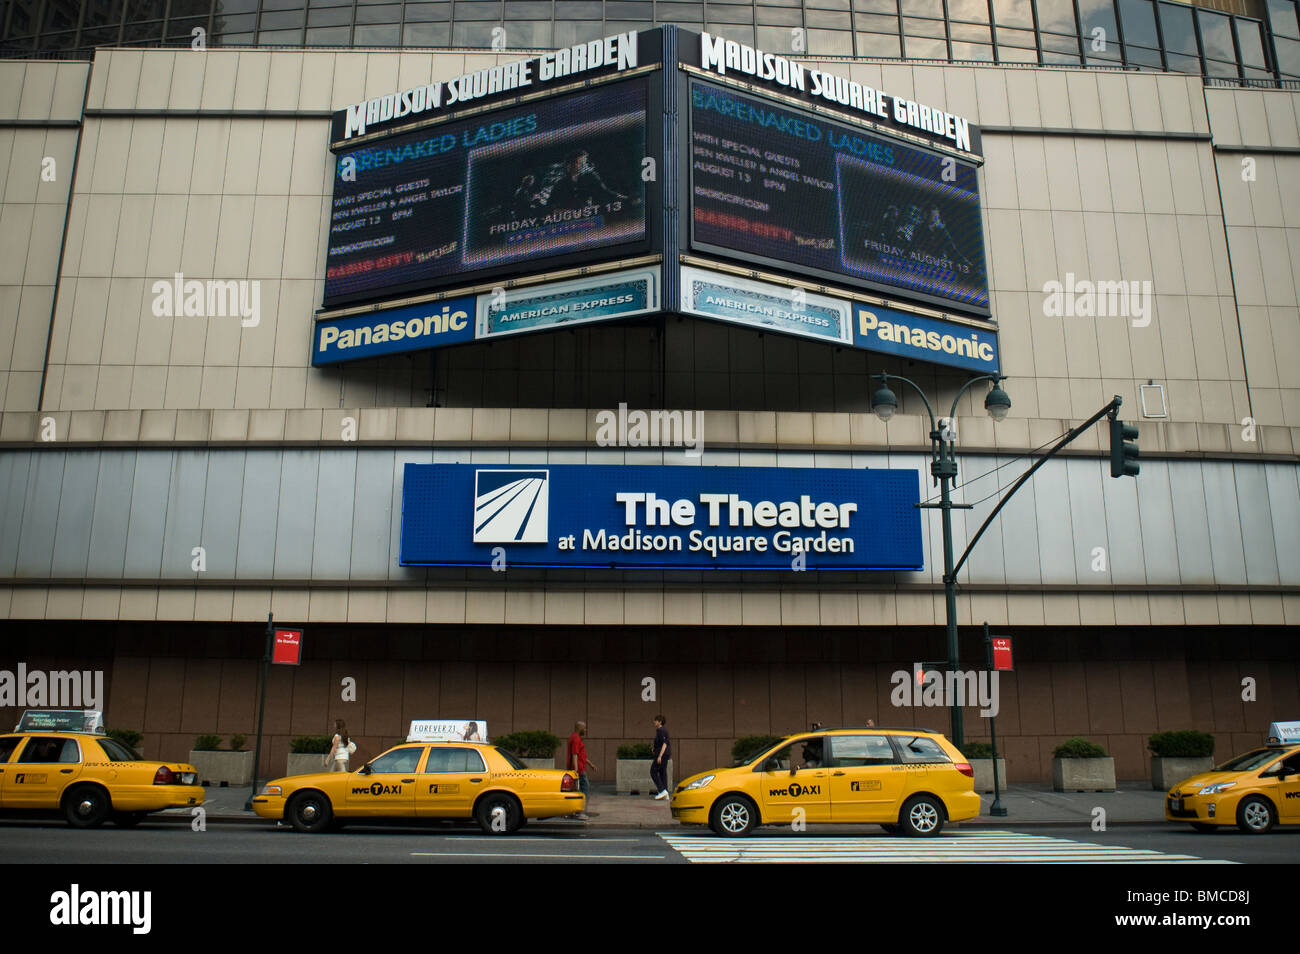 The Theater in Madison Square Garden formerly the WaMu Theater in